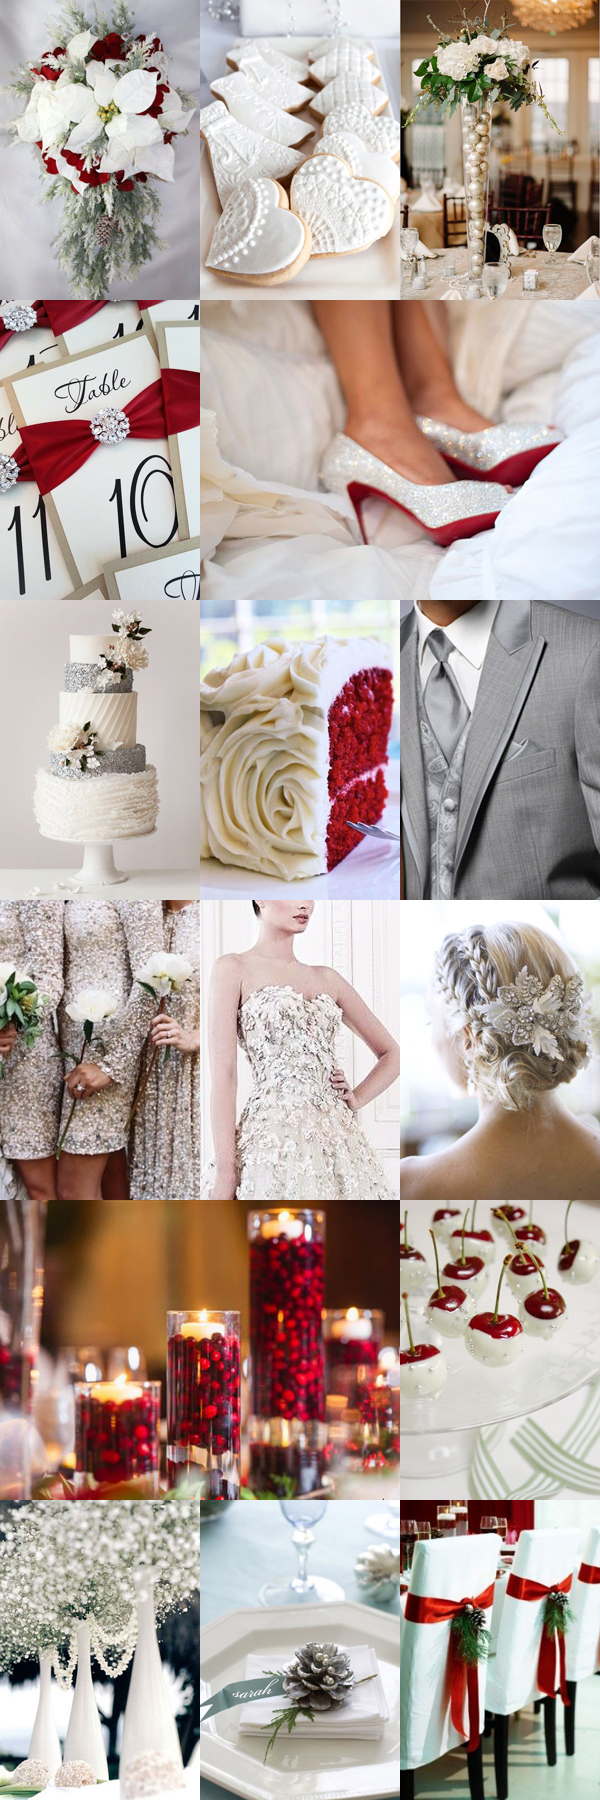 Festive Christmas Wedding Inspiration Board